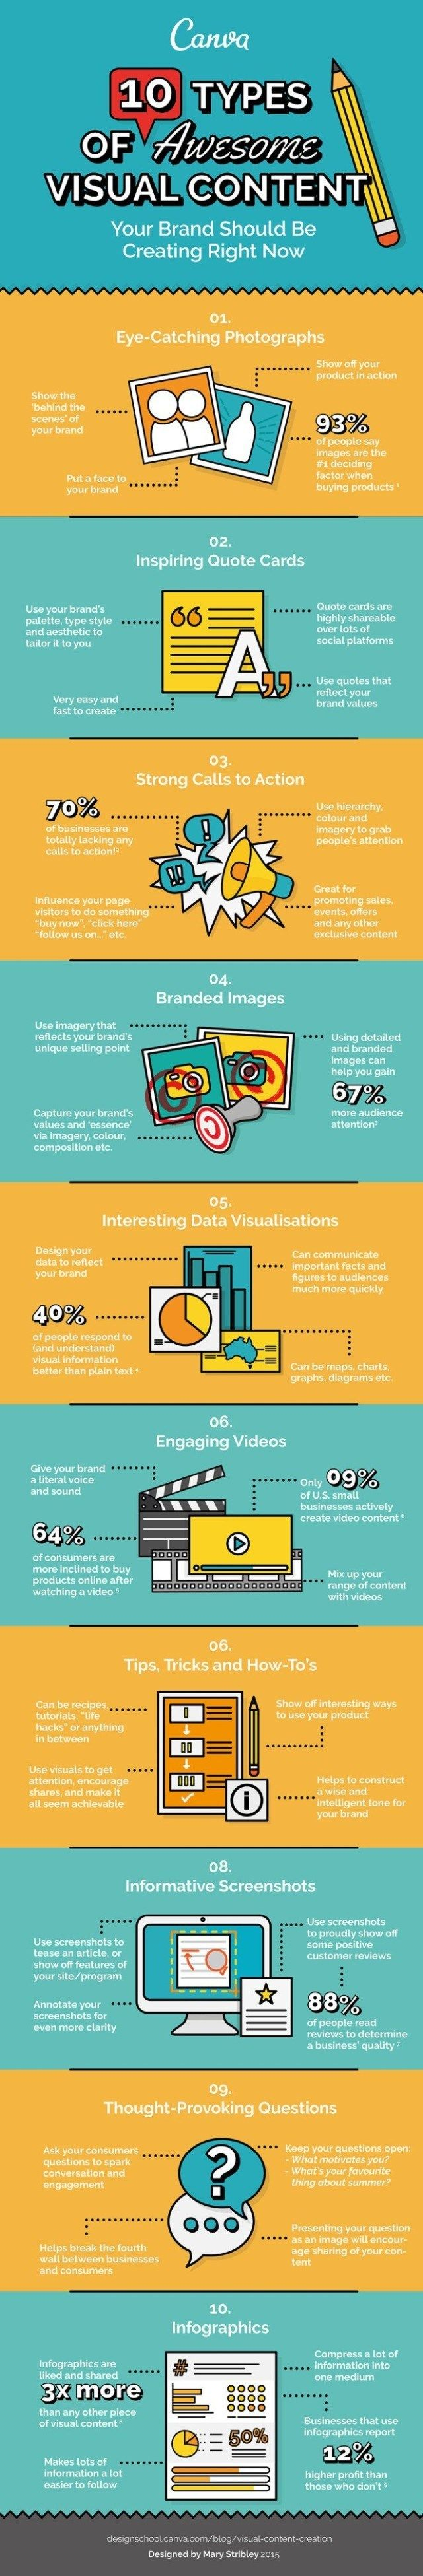 Here's 10 Ways You Can Increase #Engagement with Visual #Content [ #infographic ]